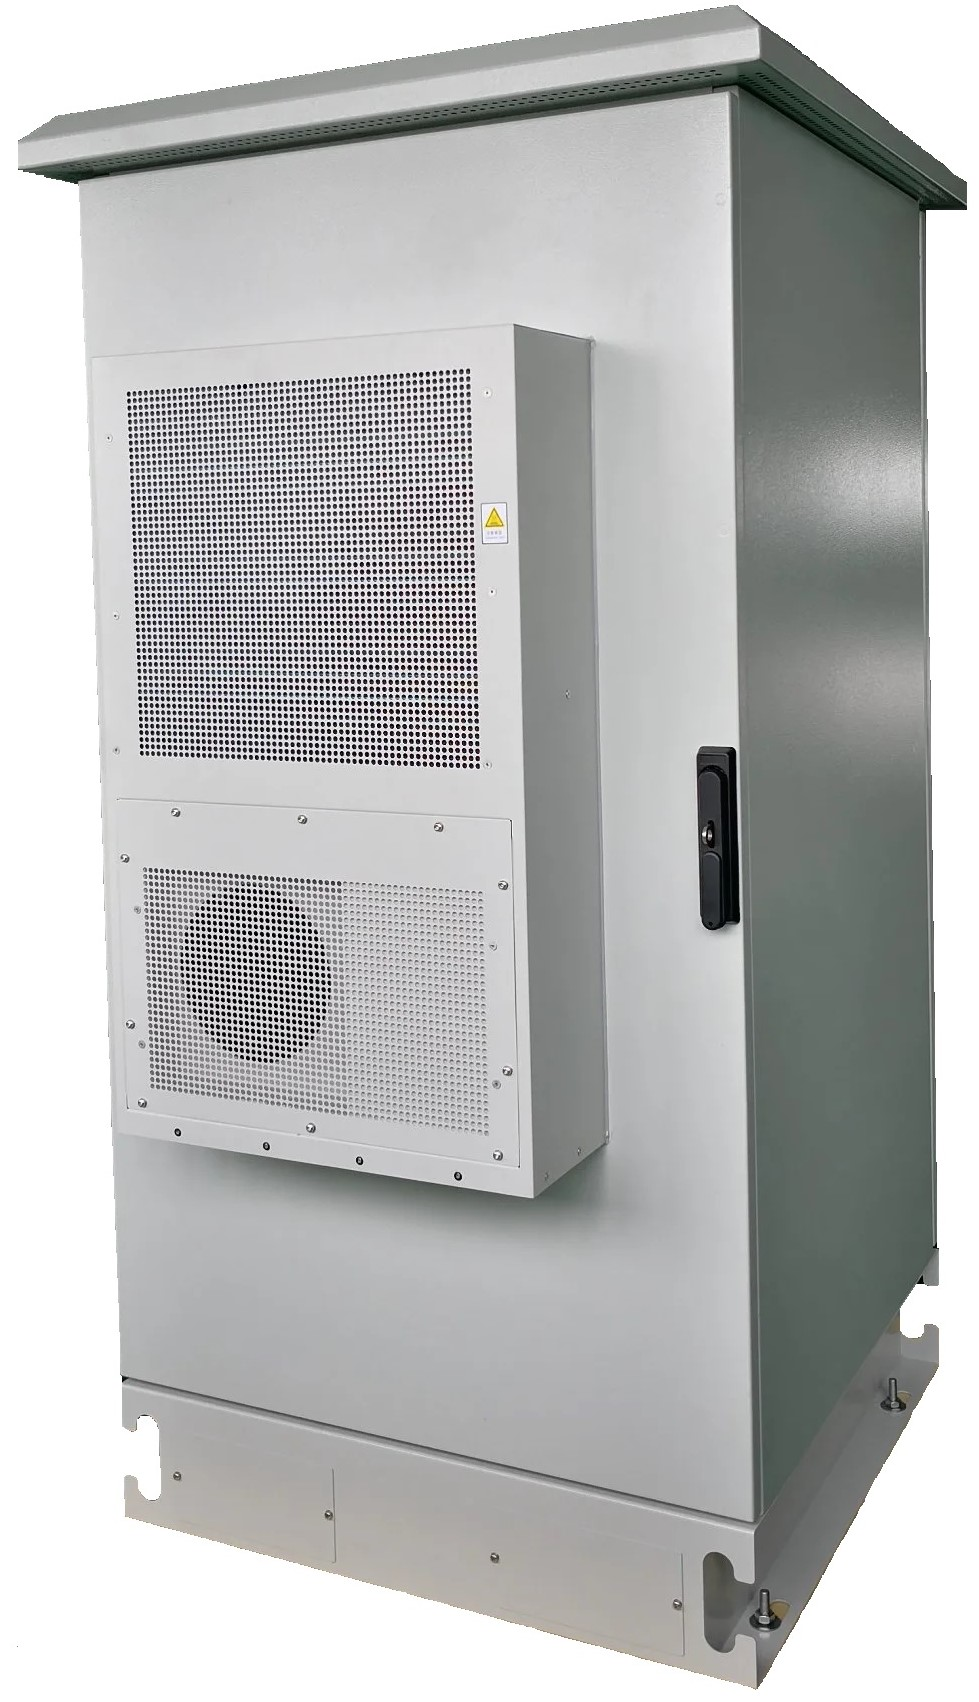 Metal-Outdoor-Cabinet-with-Air-Conditioner-for-Telecom-Use